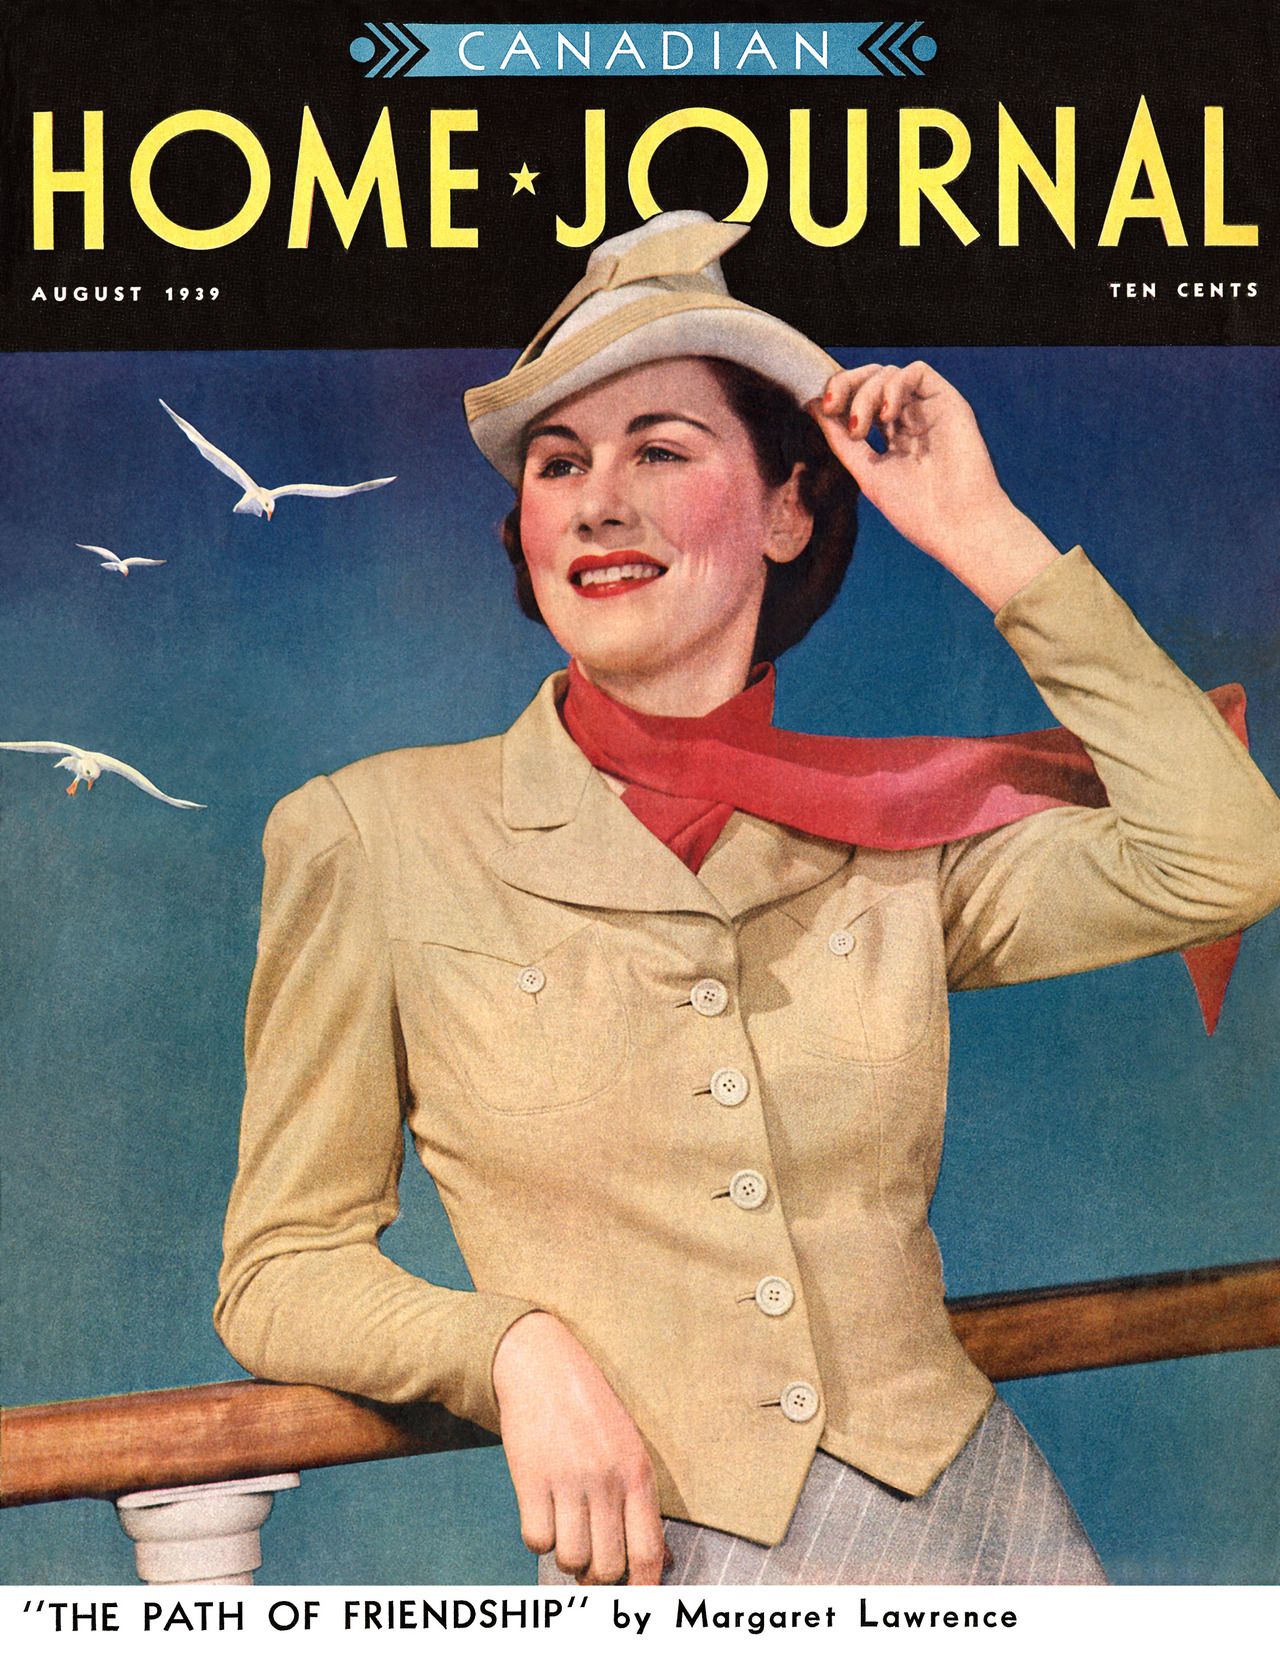 Canadian Home Journal, 1939